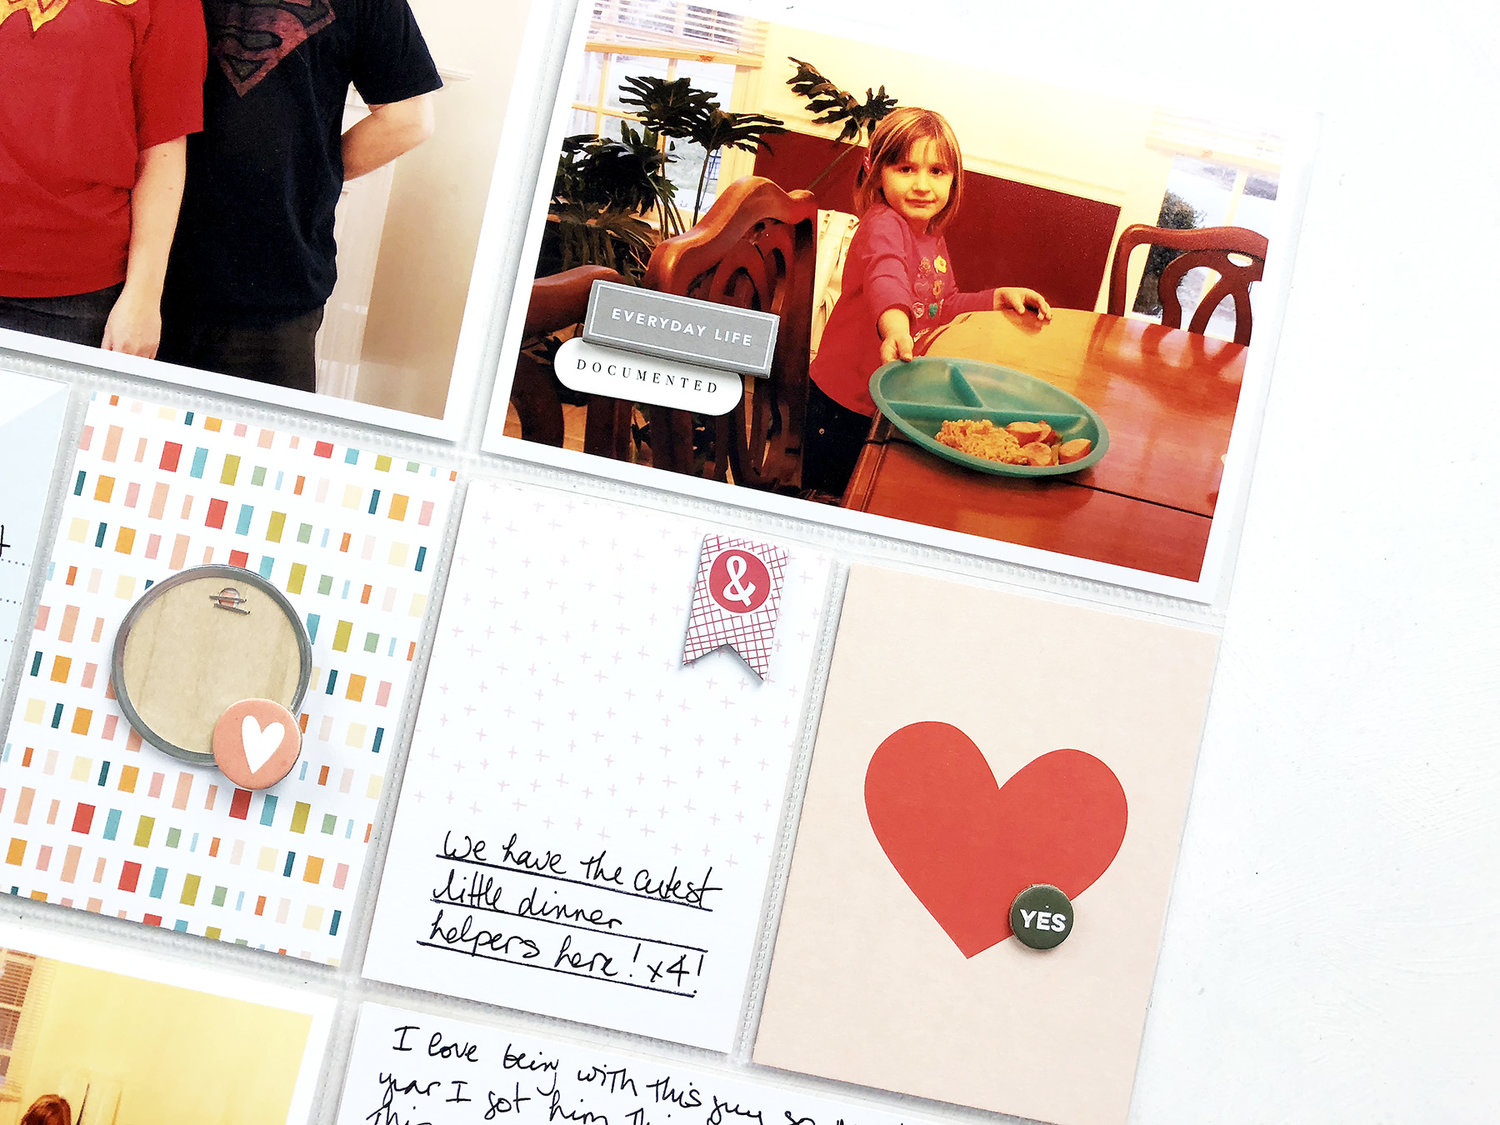 Larkindesign In My Pocket Vol 02 2013 Project Life Week 07